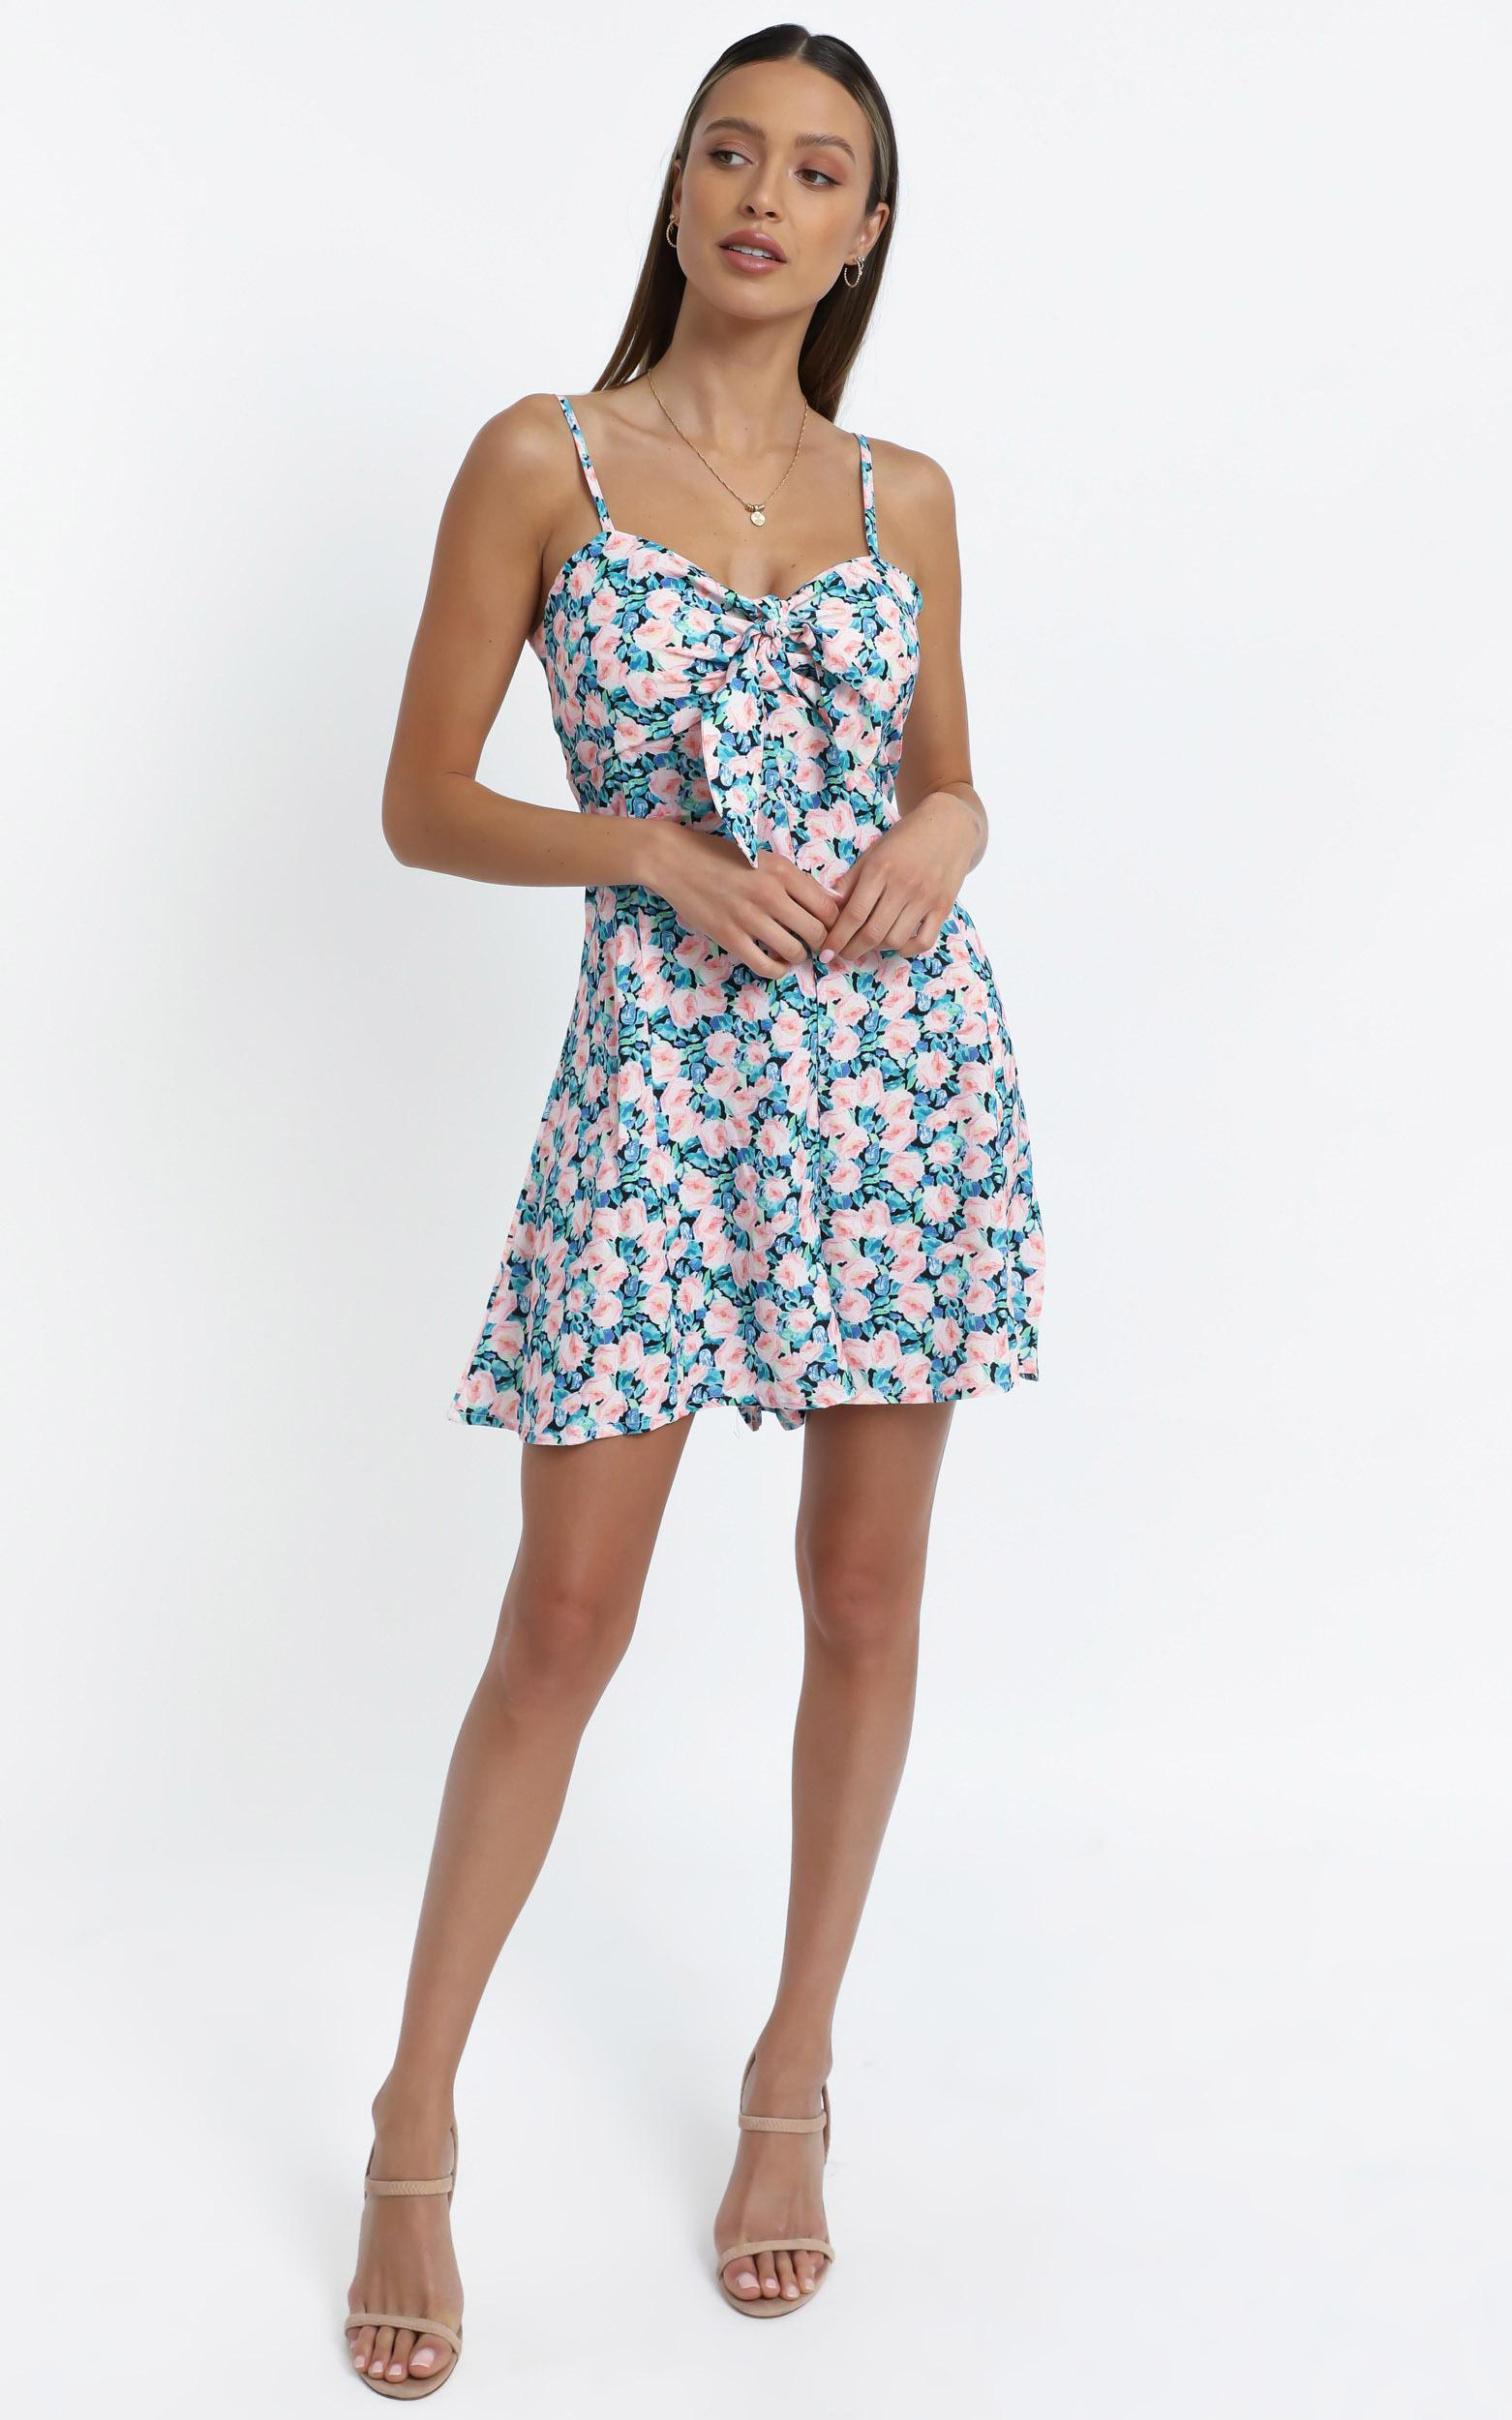 Haiden Swing Dress in MultiFloral - 12 (L), Multi, hi-res image number null